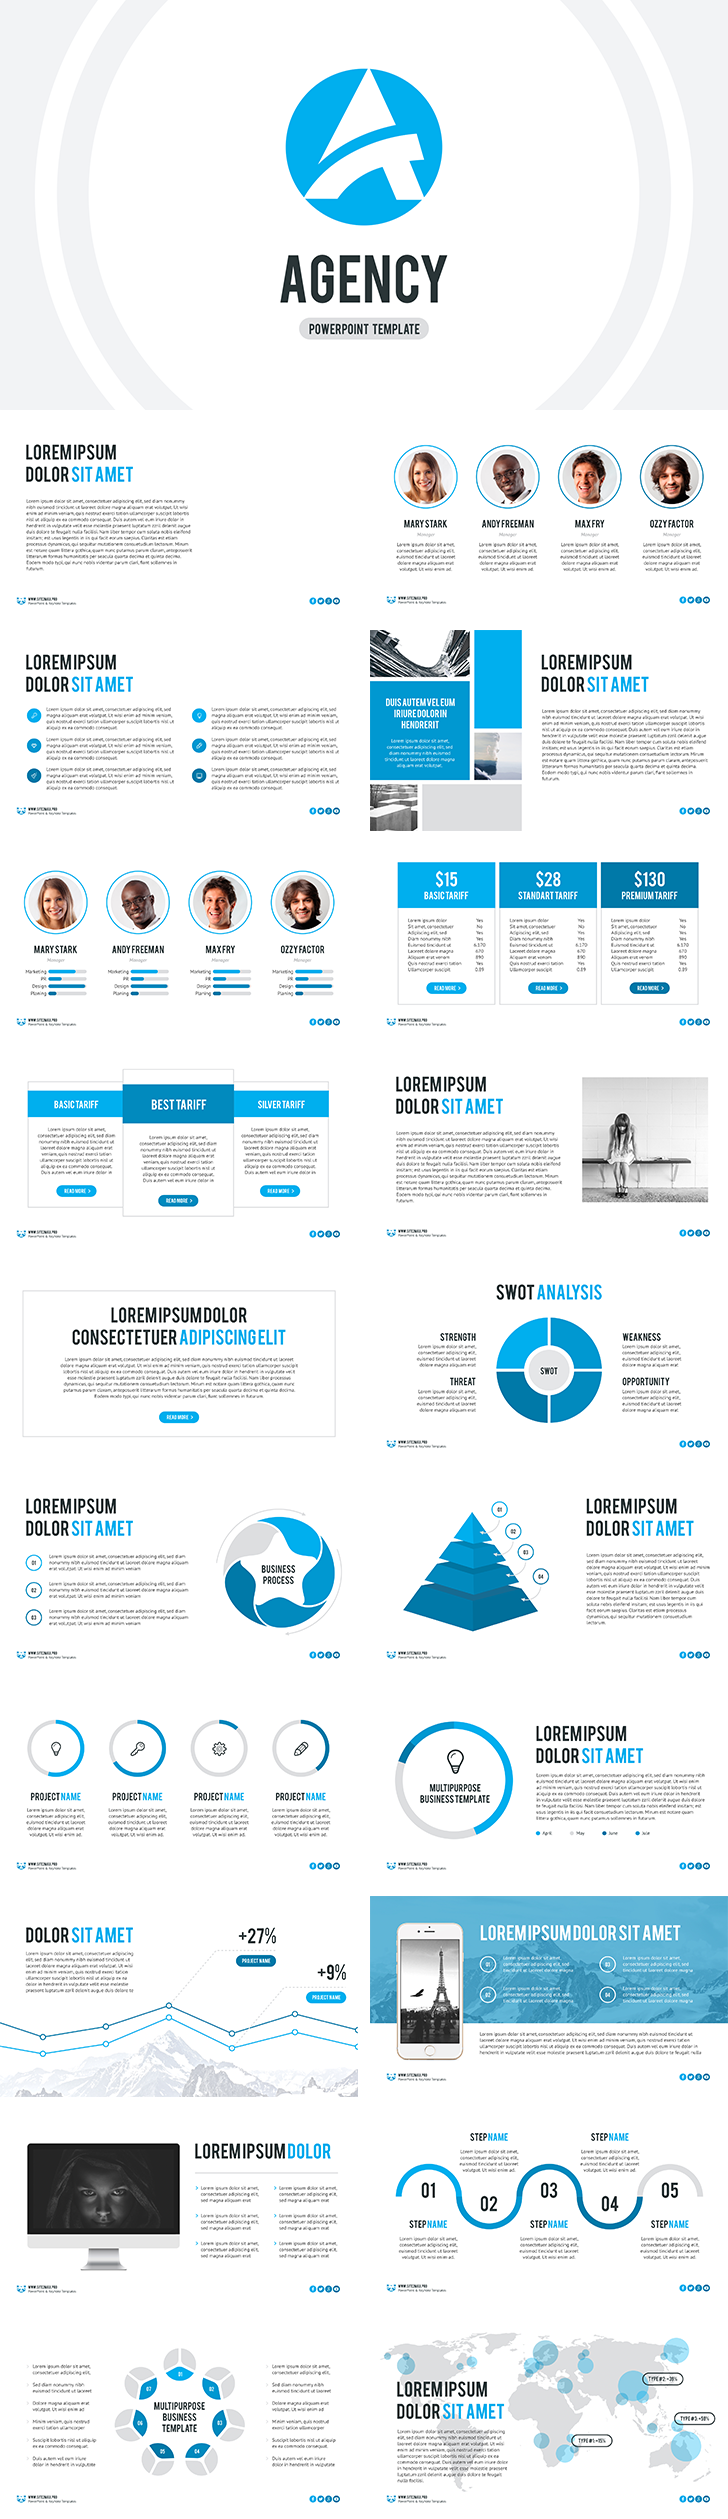 the agency free powerpoint template is a full set of necessary, Presentation templates